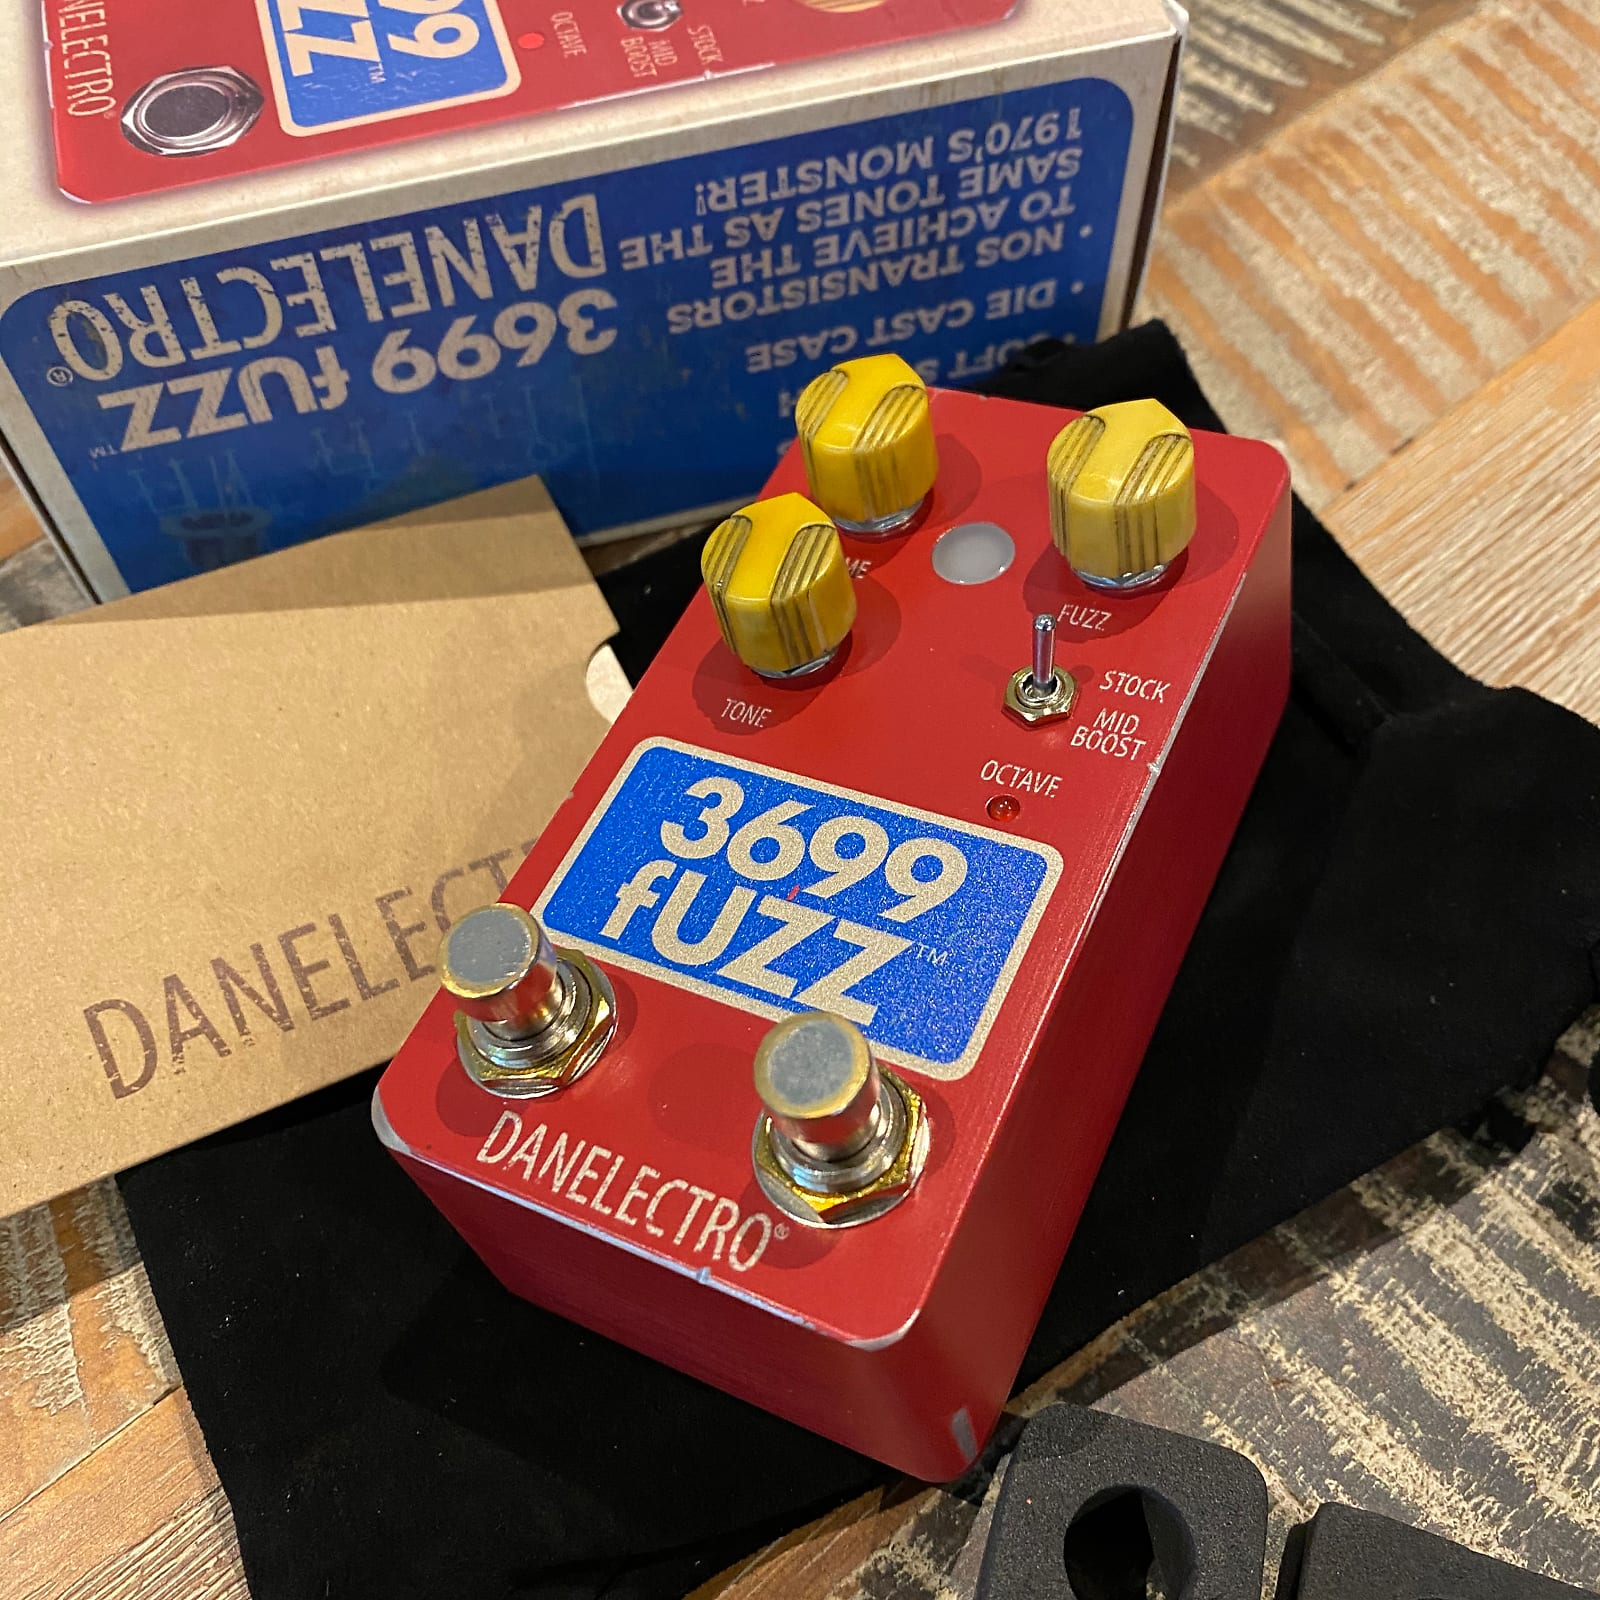 Danelectro 3699 fUZZ - 2020 Reissue of the classic fOXX Tone Machine! In stock & shipping now.